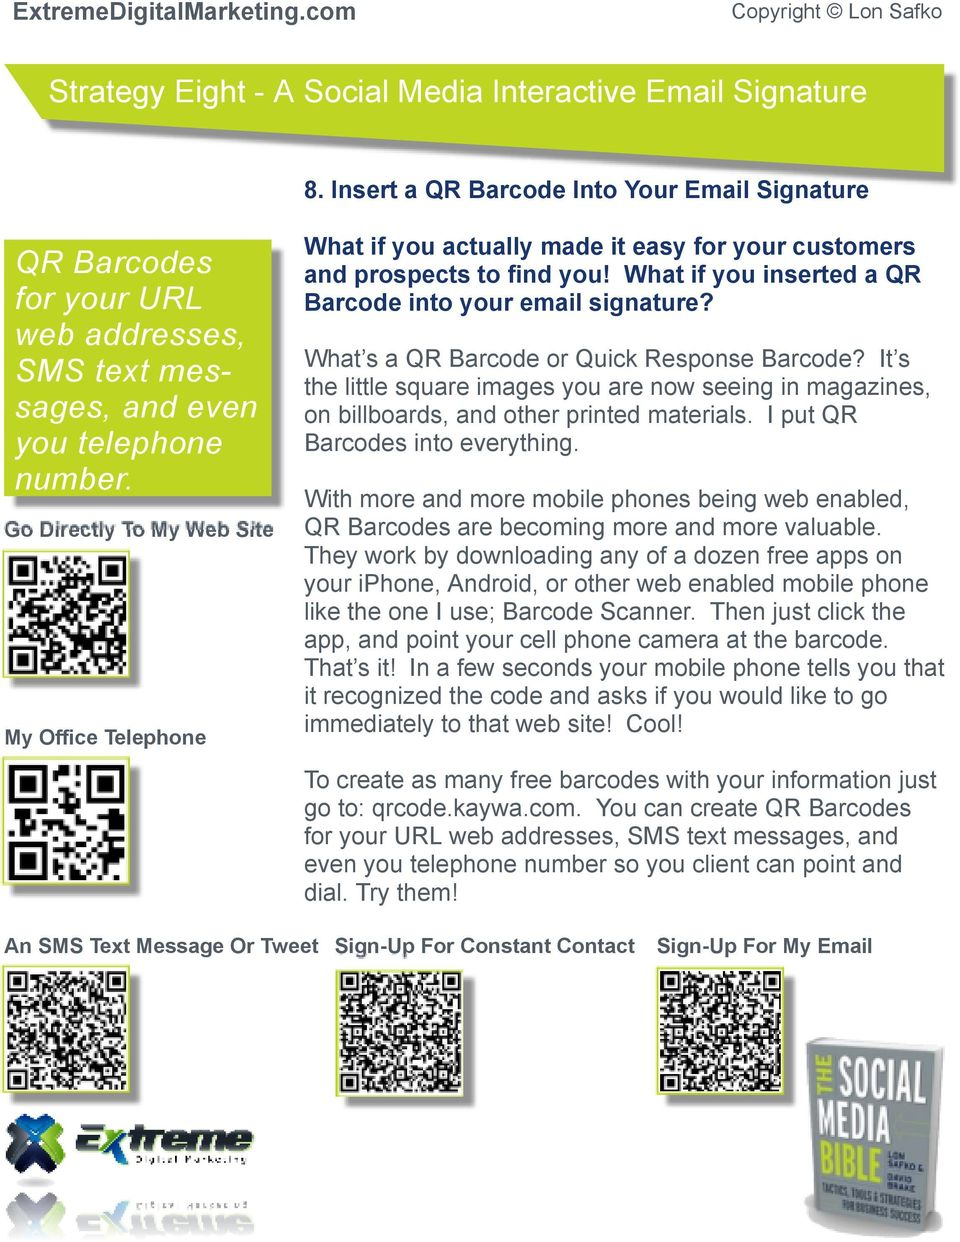 What s a QR Barcode or Quick Response Barcode? It s the little square images you are now seeing in magazines, on billboards, and other printed materials. I put QR Barcodes into everything.